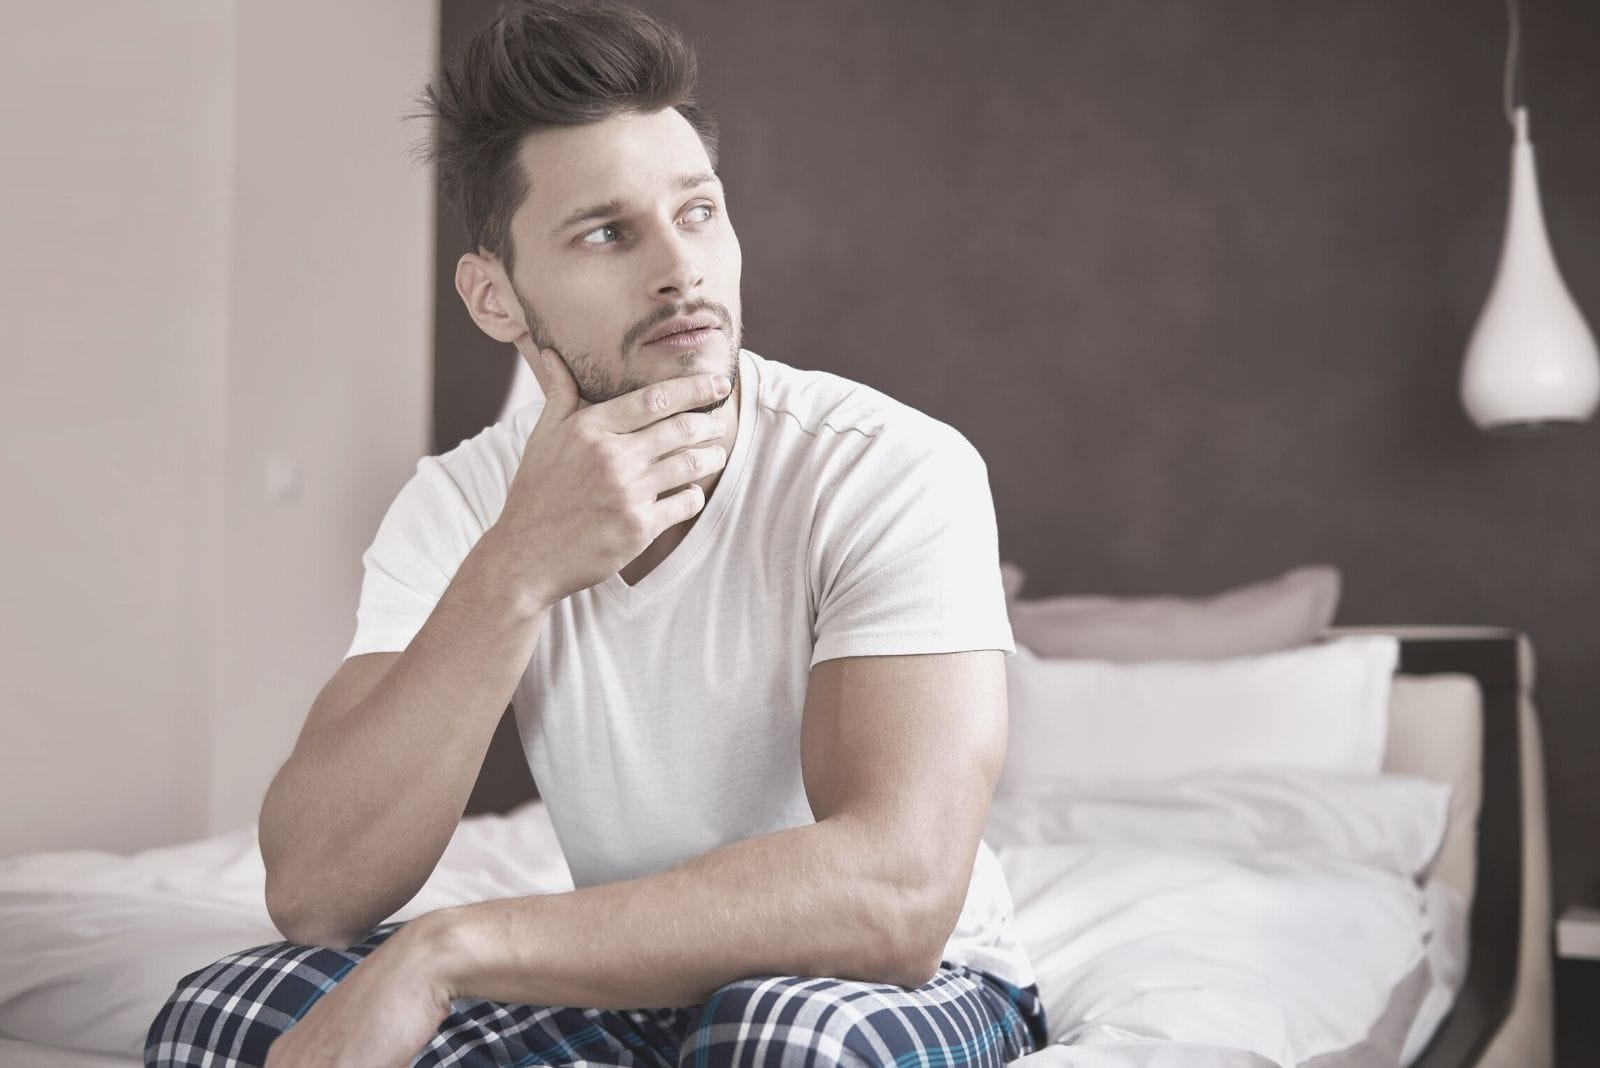 pensive man sitting at the edge of the bed inside the bedroom on his pajamas